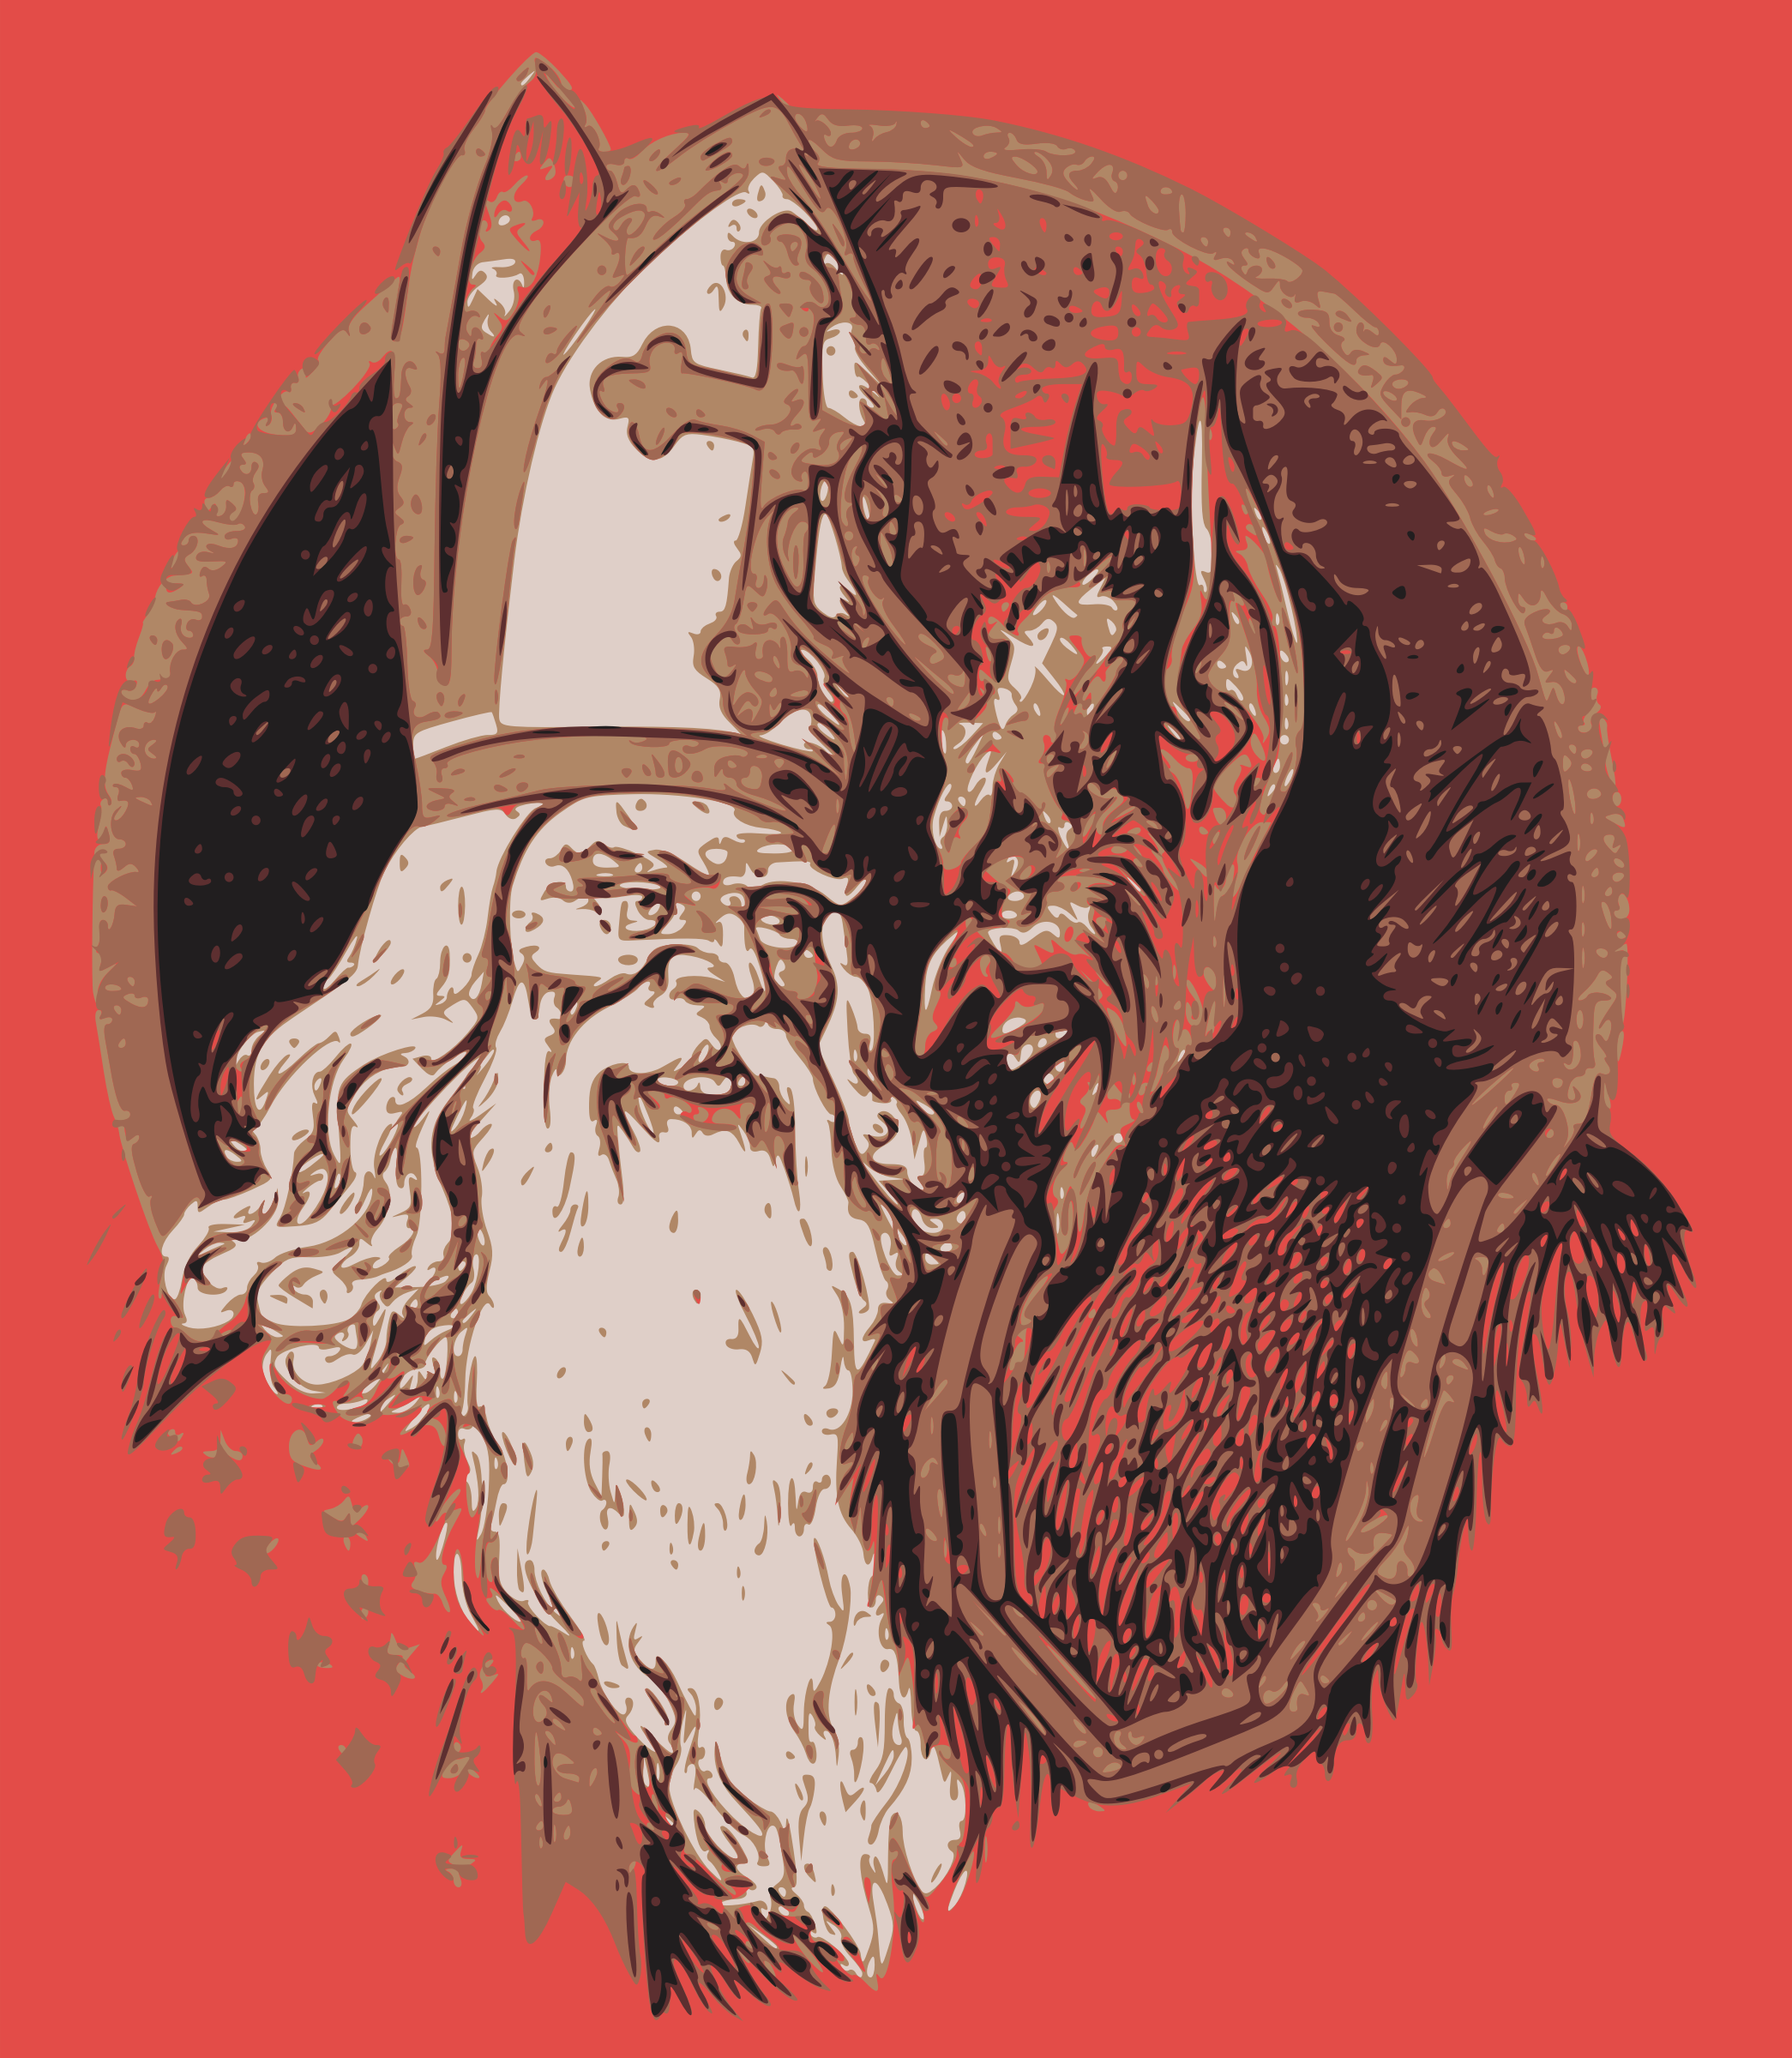 Nikolaus and Krampus by j4p4n